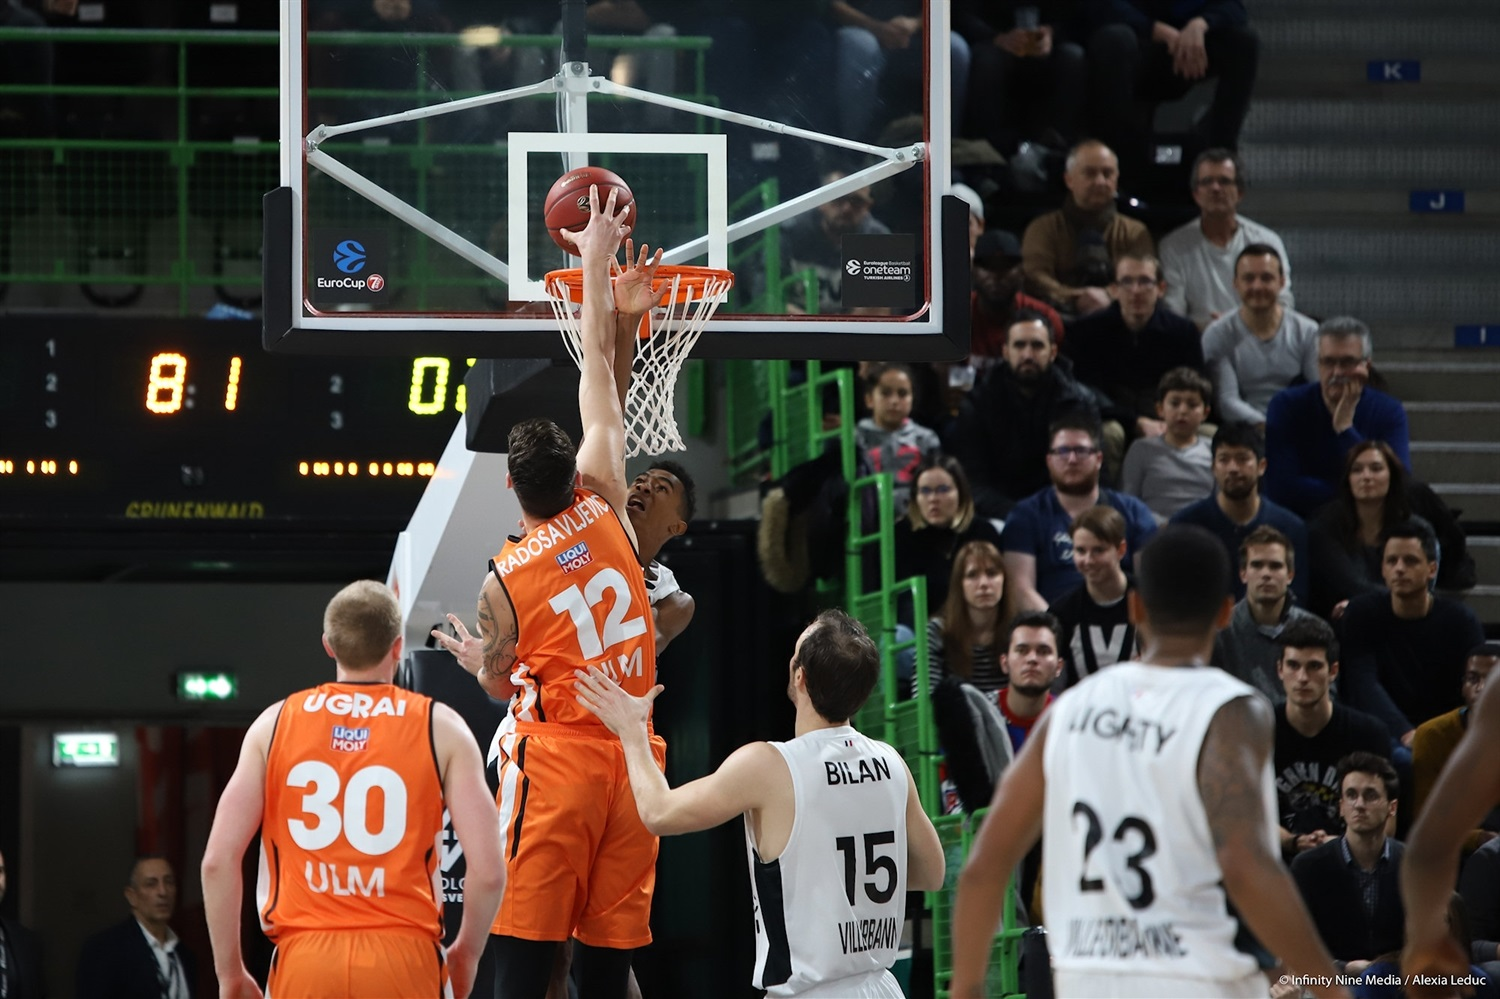 Bogdan Radosavljevic - ratiopharm Ulm (photo Infinity Nine Media - Alexia Leduc) - EC18